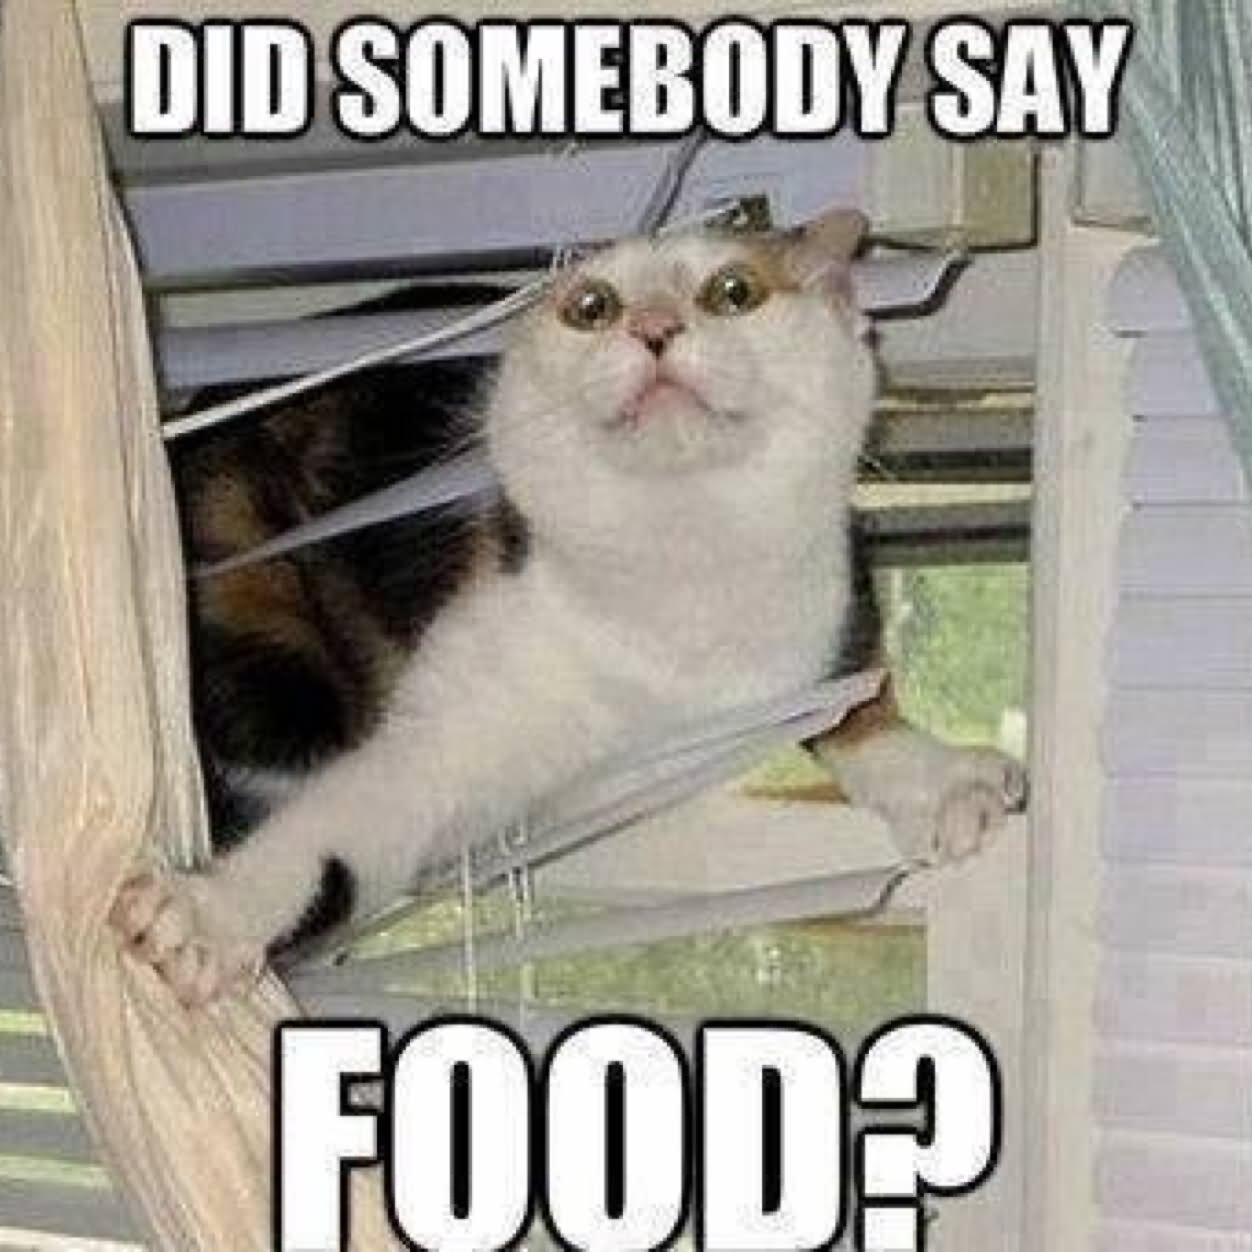 Did Somebody Say Food Funny Meme Picture 33 most funniest food meme images and pictures,Funny Food Memes